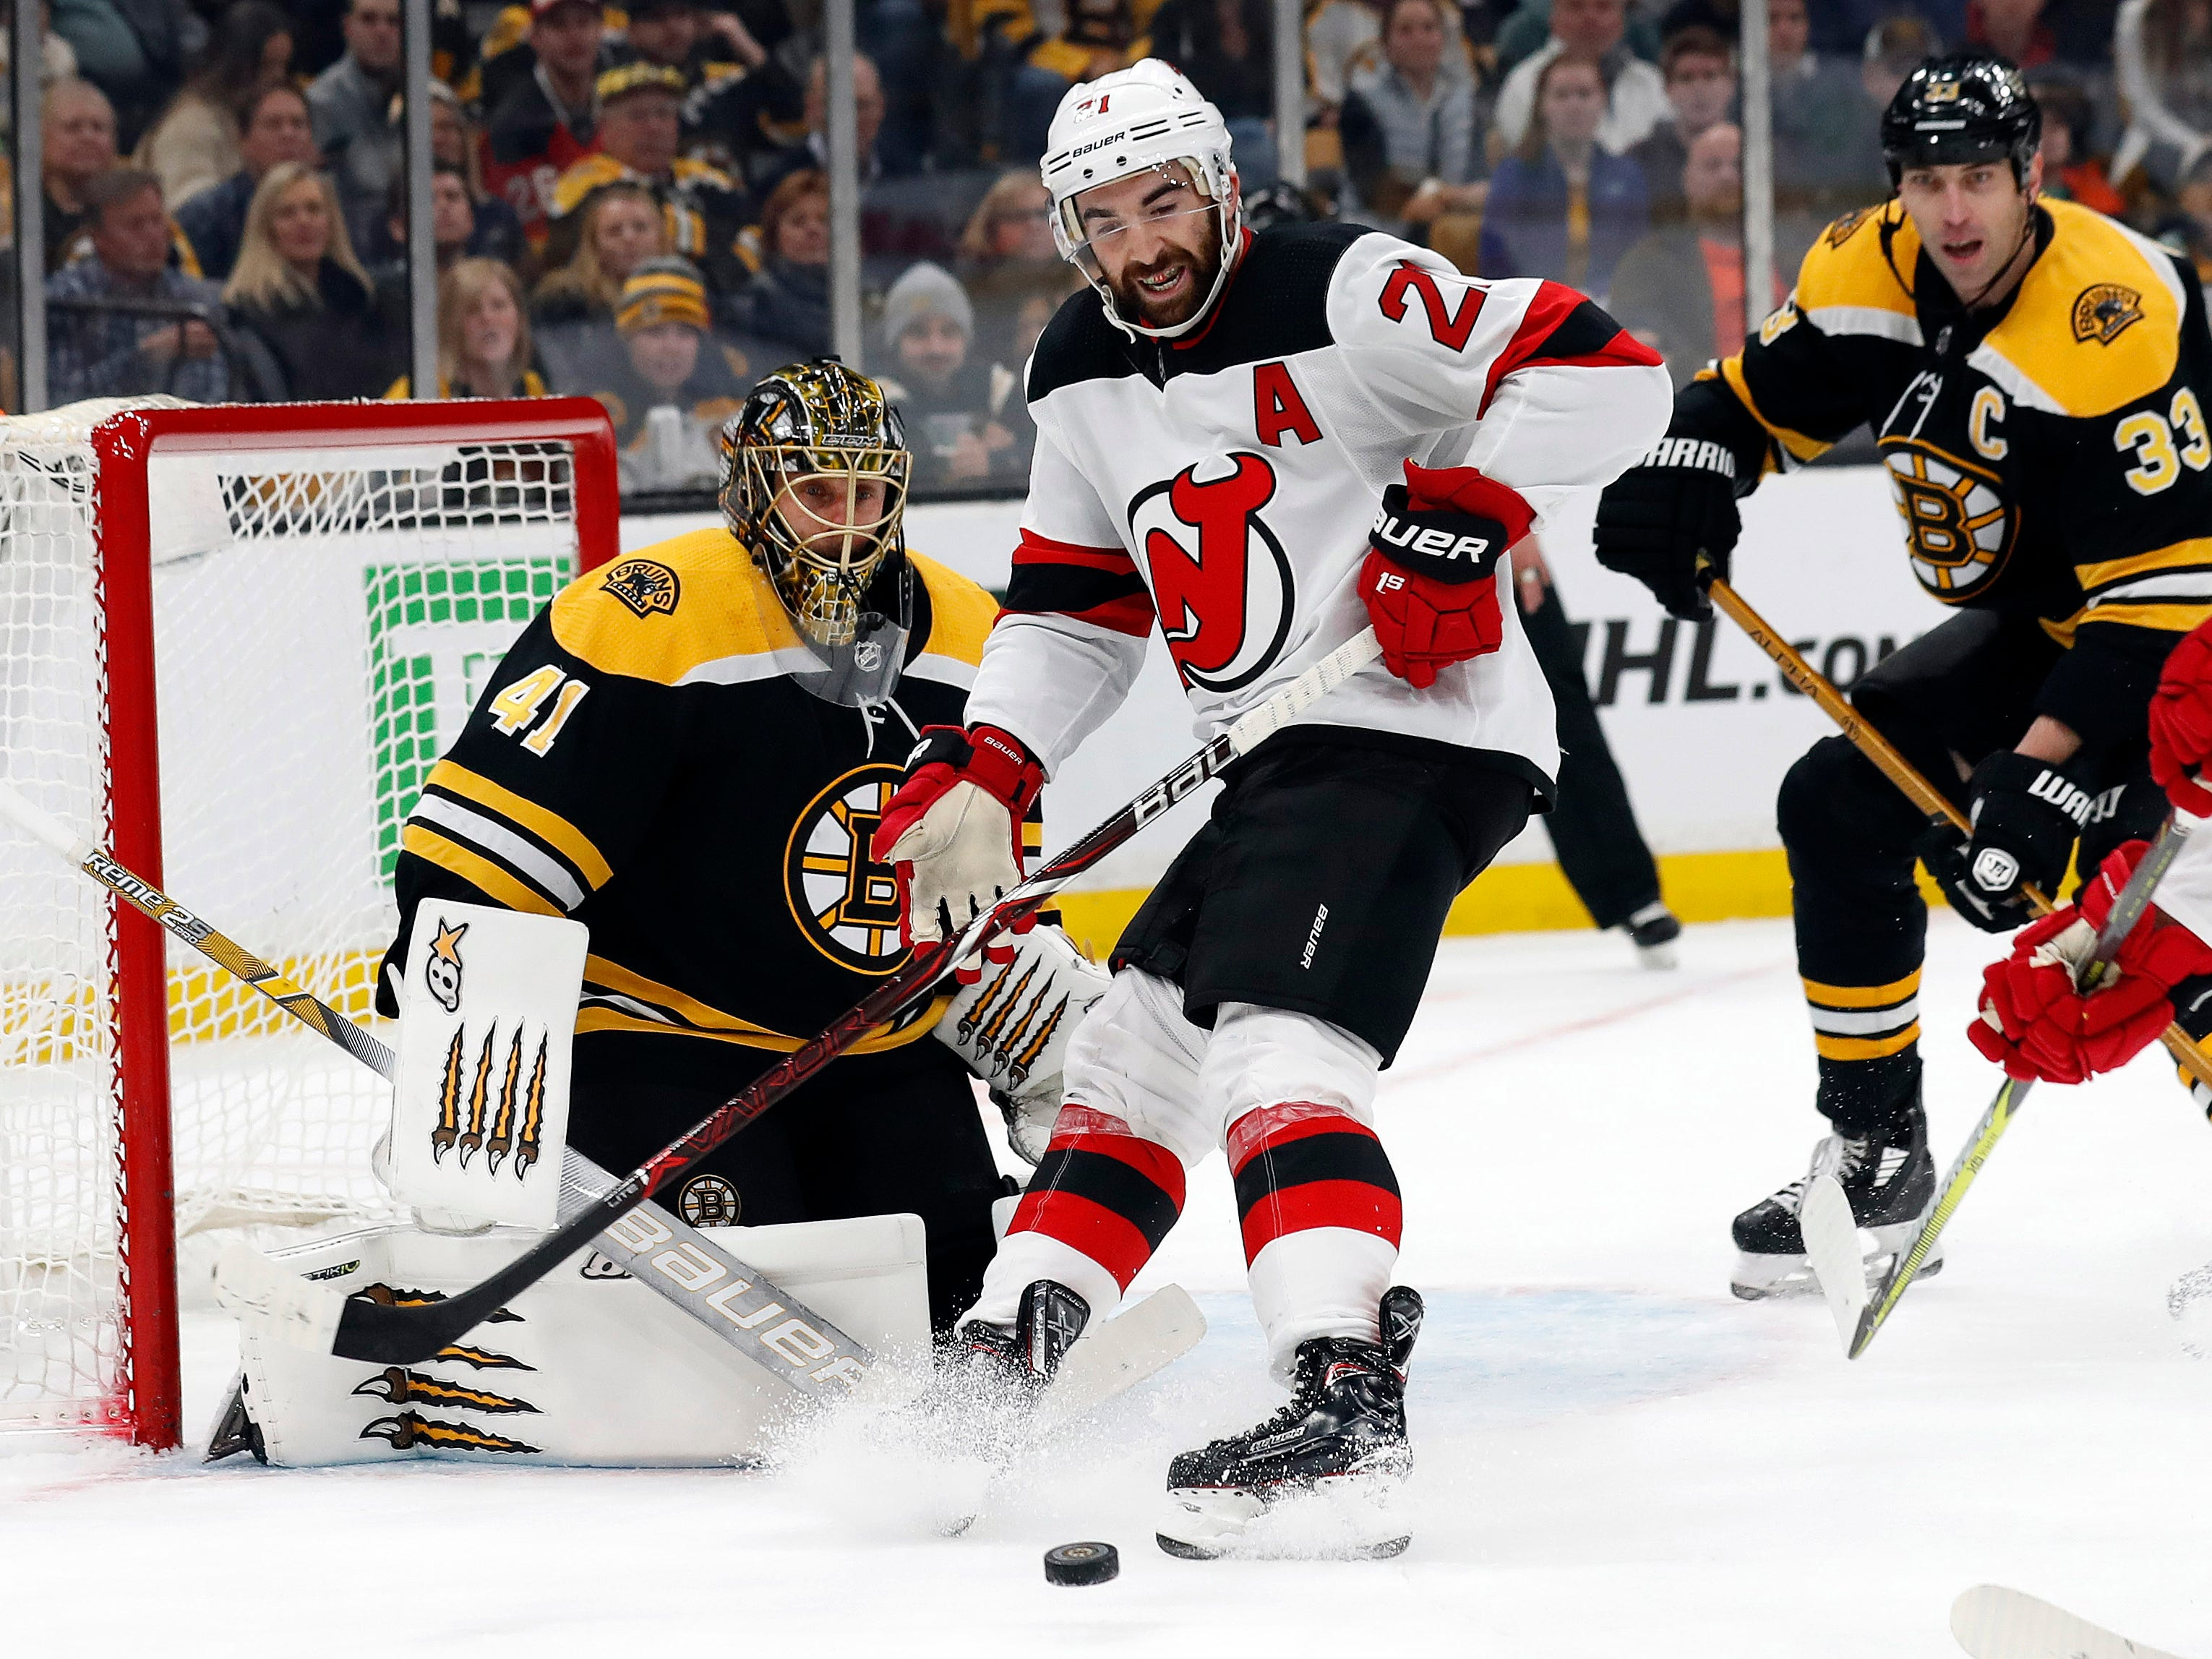 Dec 27, 2018; Boston, MA, USA; New Jersey Devils right wing Kyle Palmieri (21) looks for a loose puck in front of Boston Bruins goaltender Jaroslav Halak (41) during the first period at TD Garden.